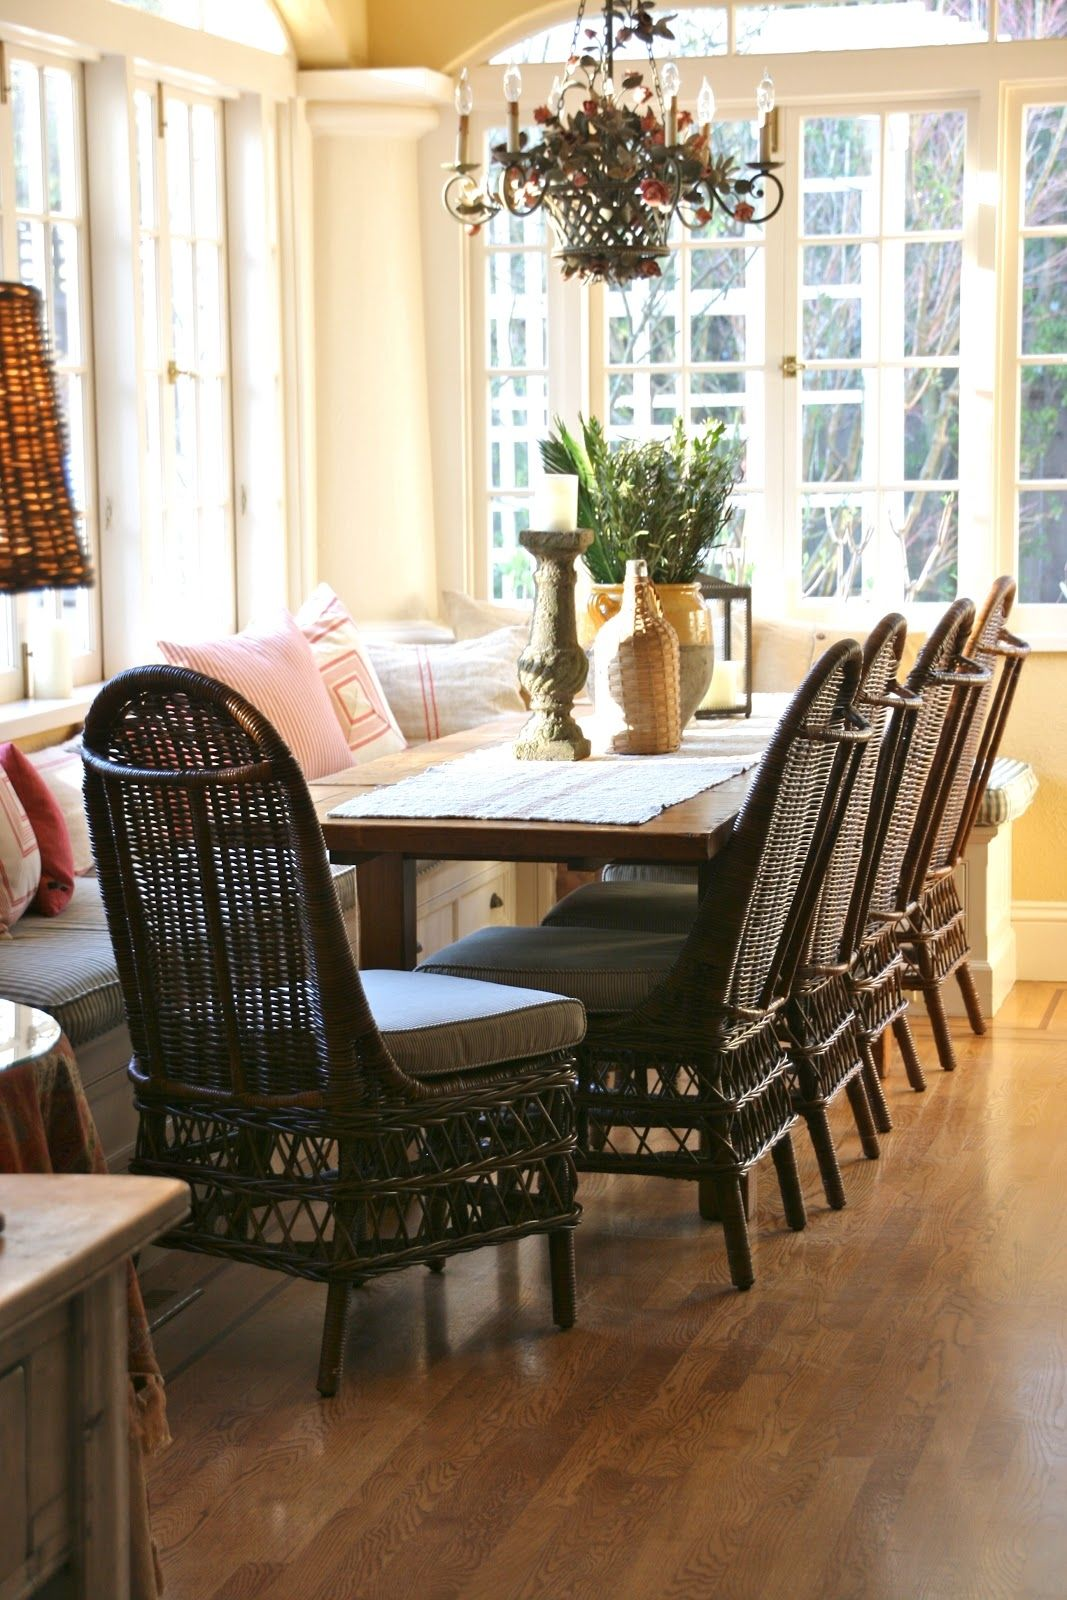 Pottery Barn Wicker Dining Room Chairs  Httpenricbataller Endearing Wicker Dining Room Sets Decorating Inspiration